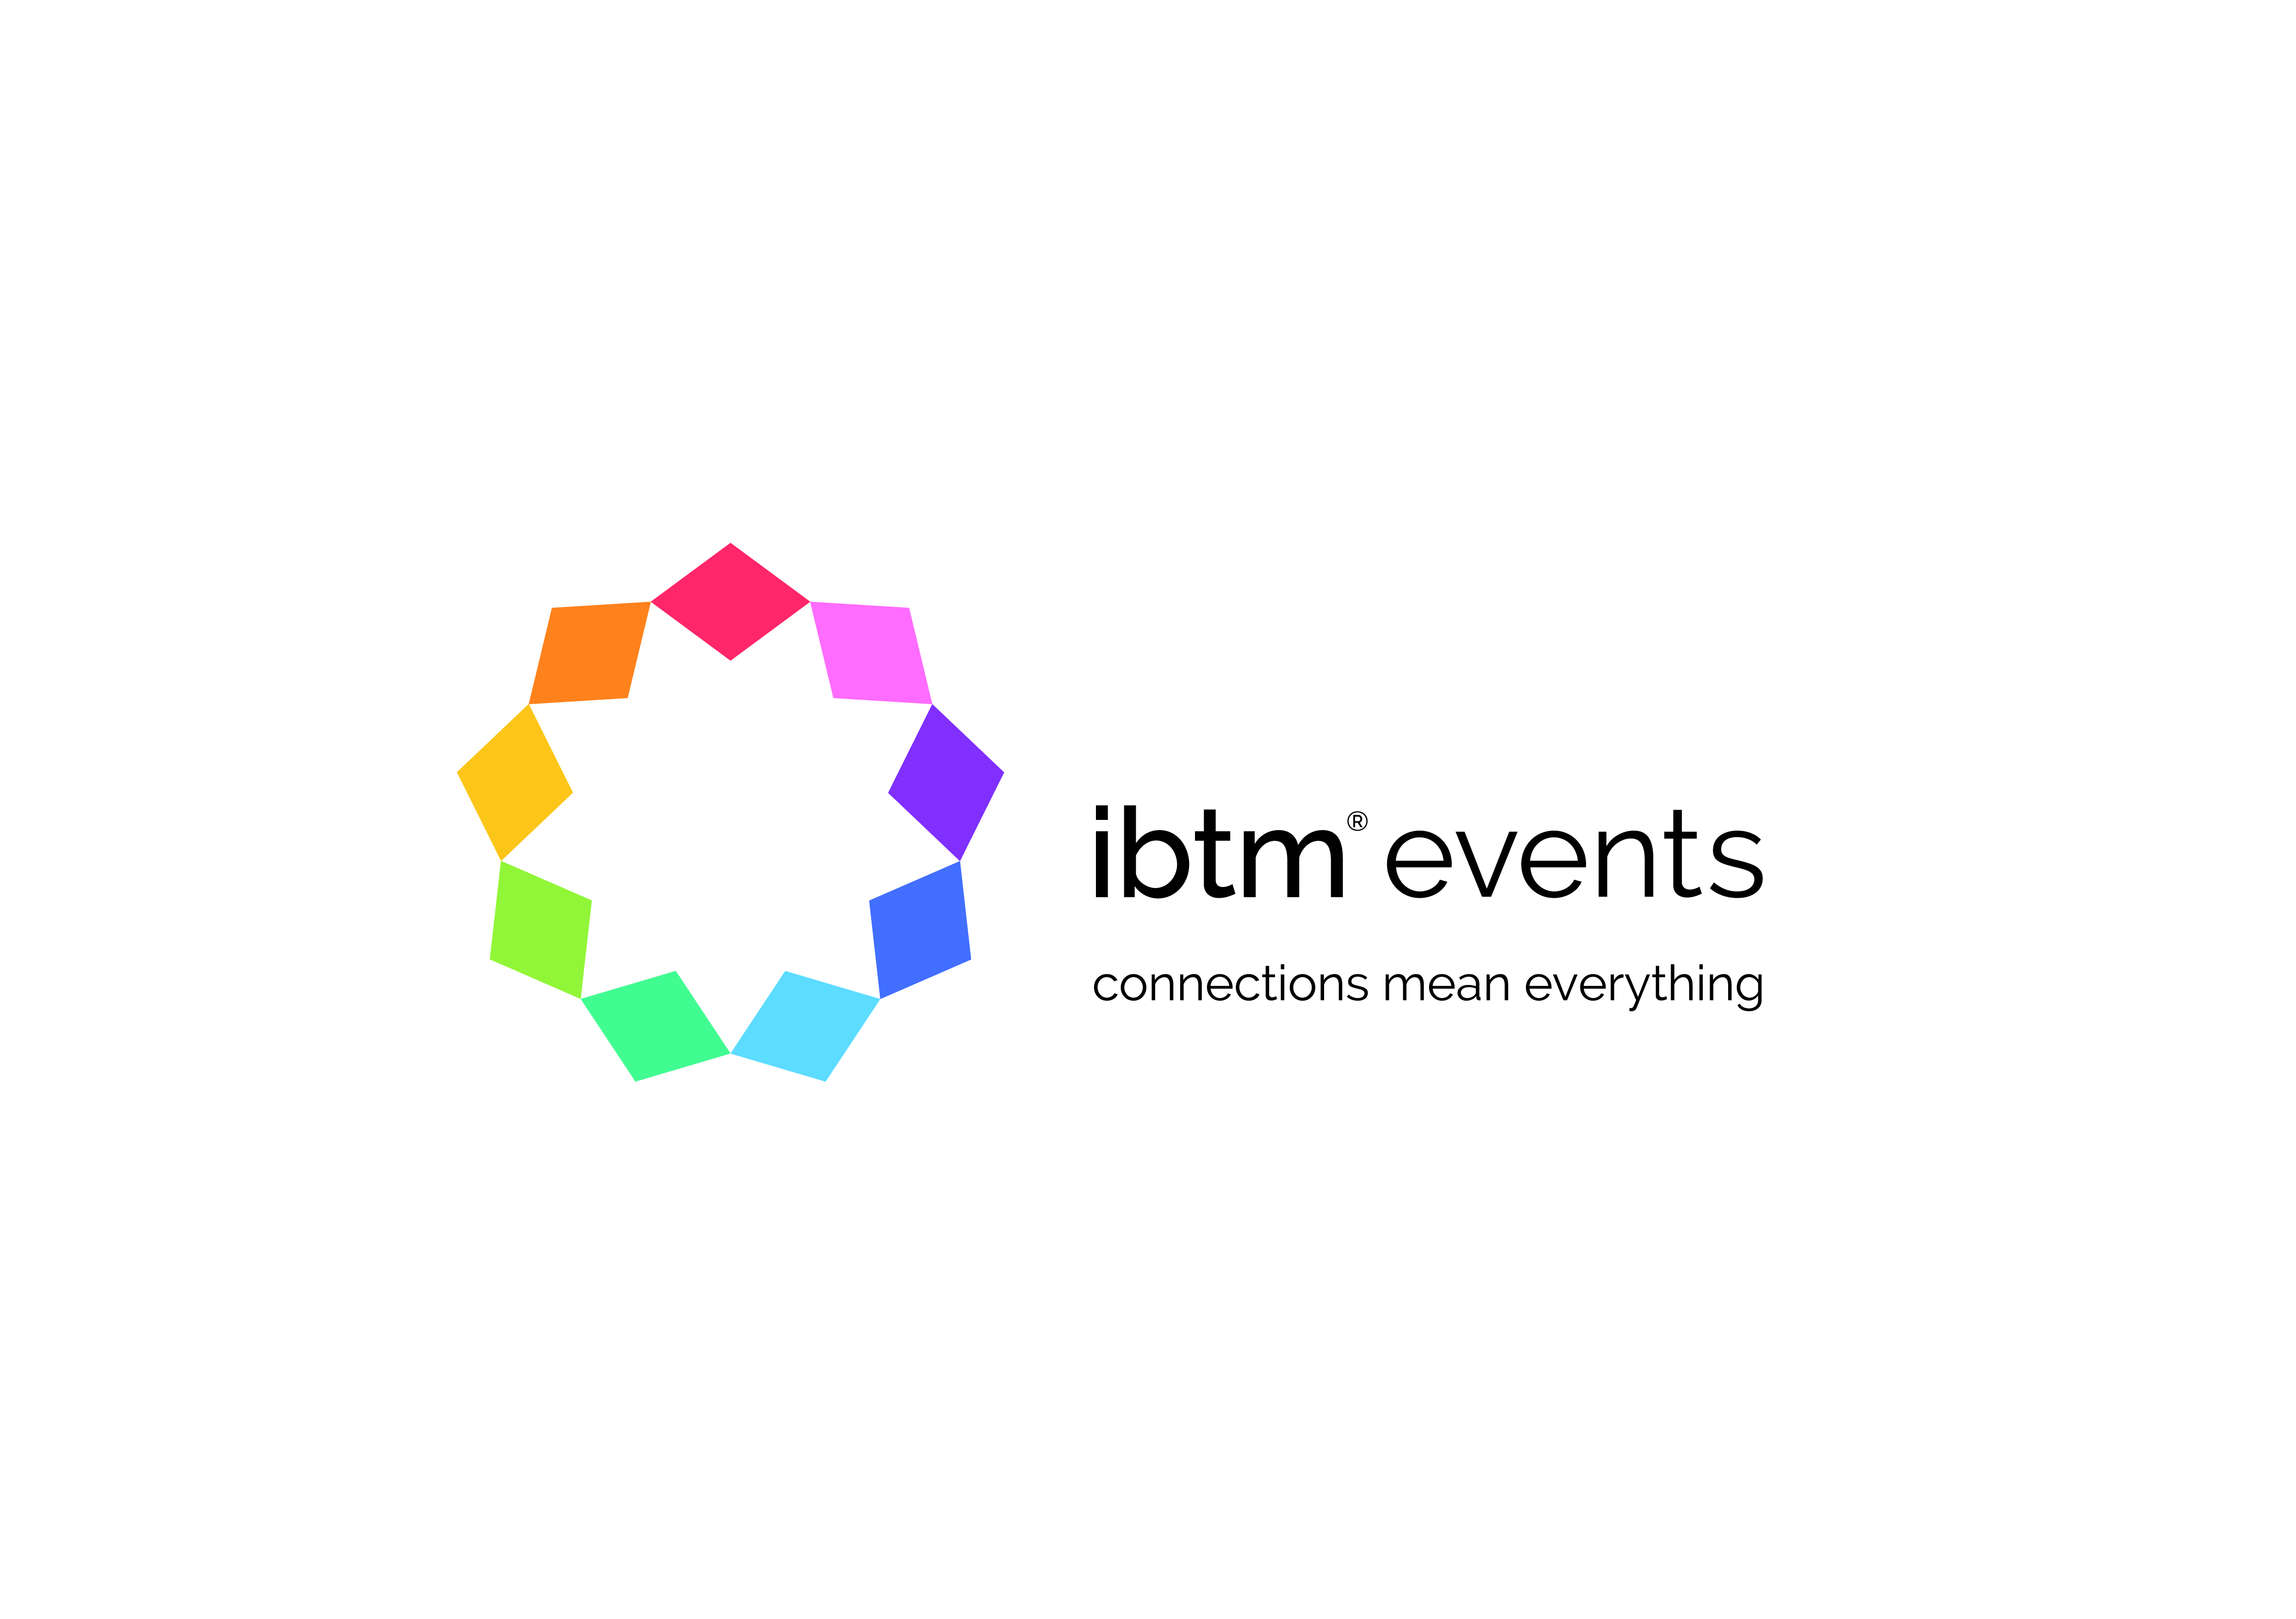 ibtm_events